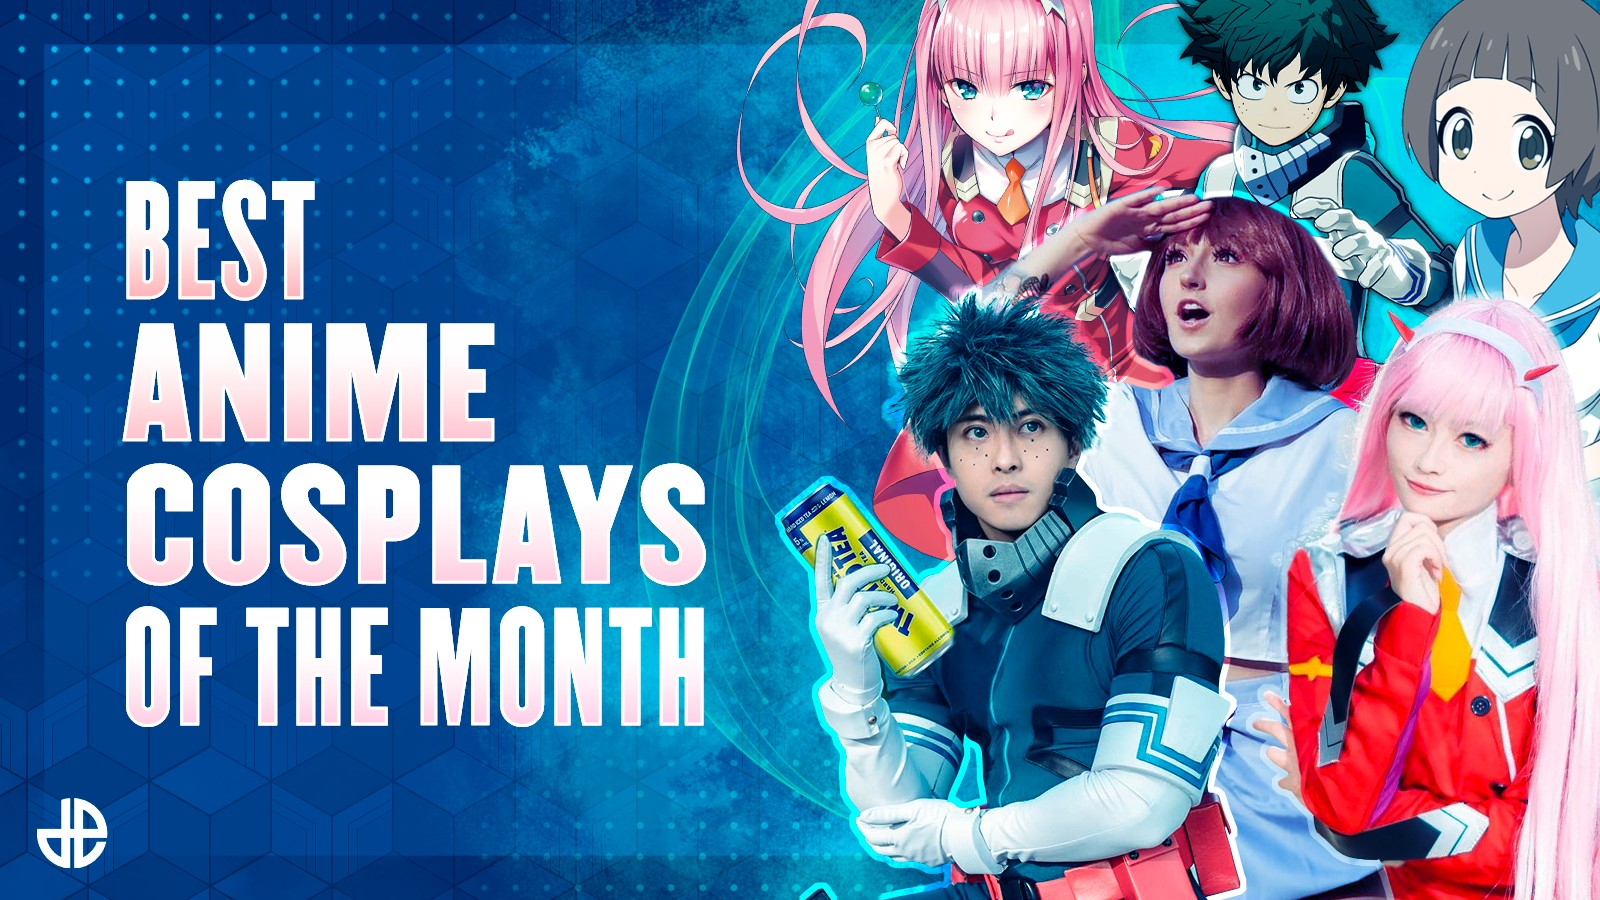 Group of cosplayers and cosplayer characters next to text reding 'Best Anime Cosplays of the Month'